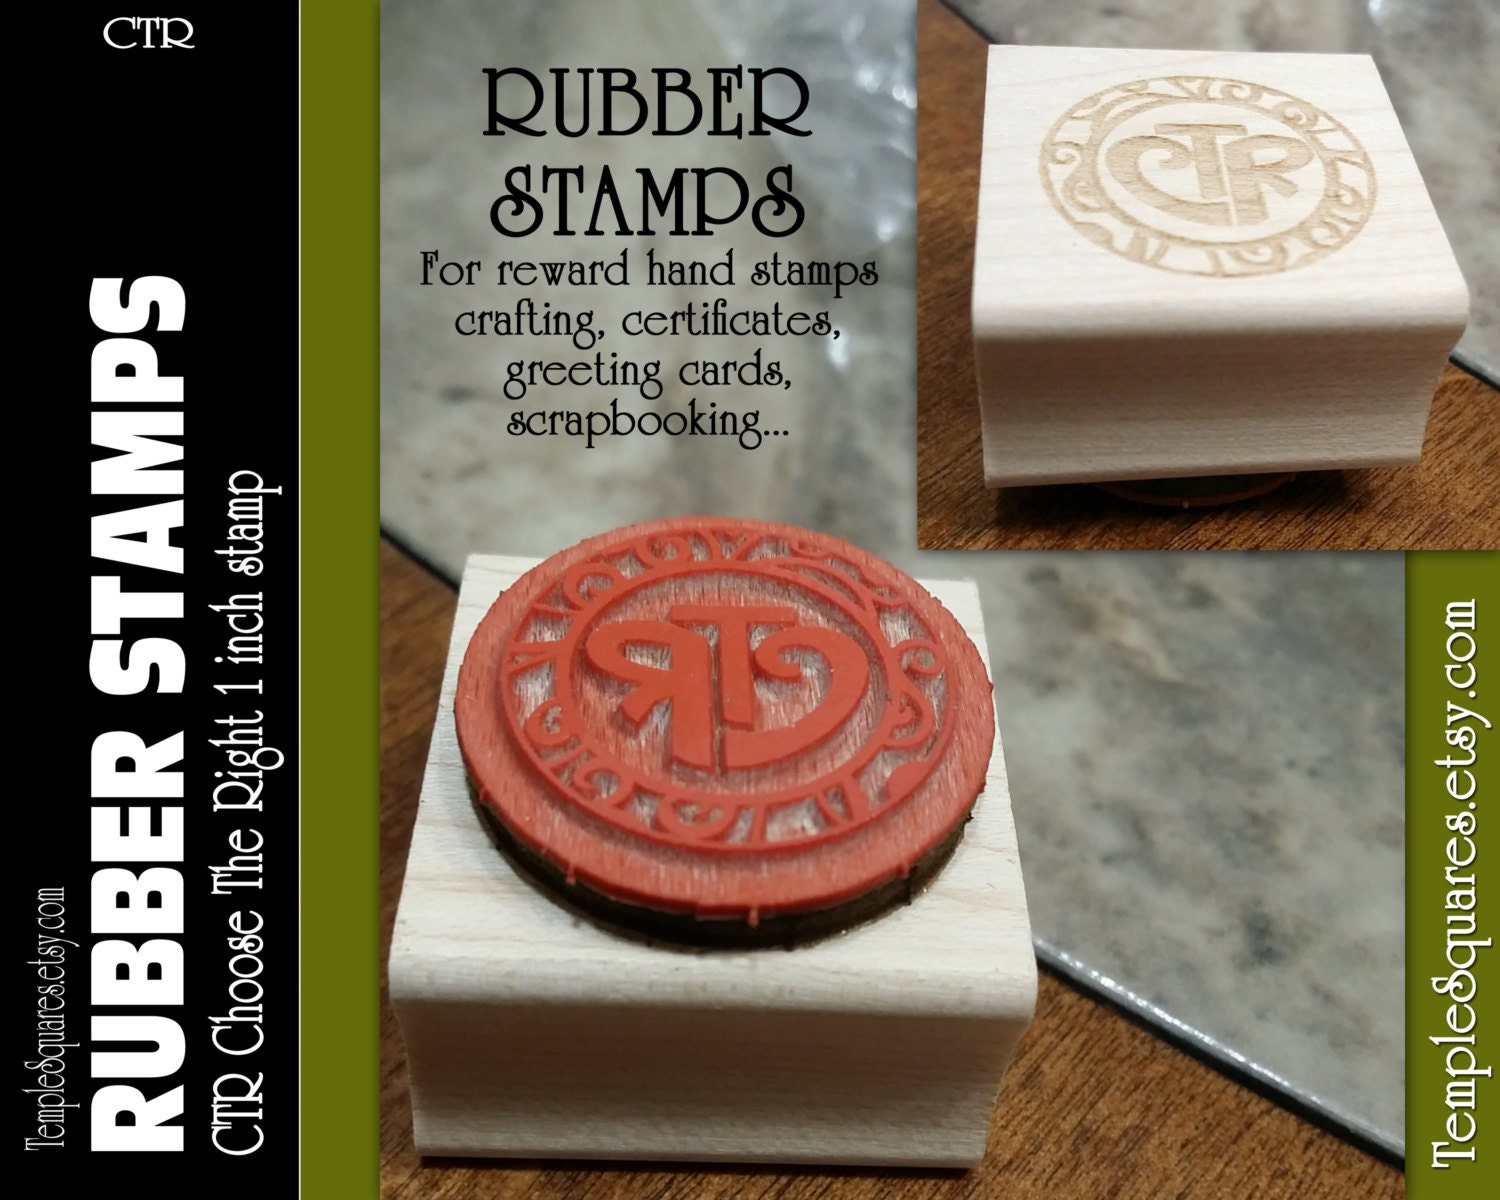 Rubber stamps for crafting -  12 95